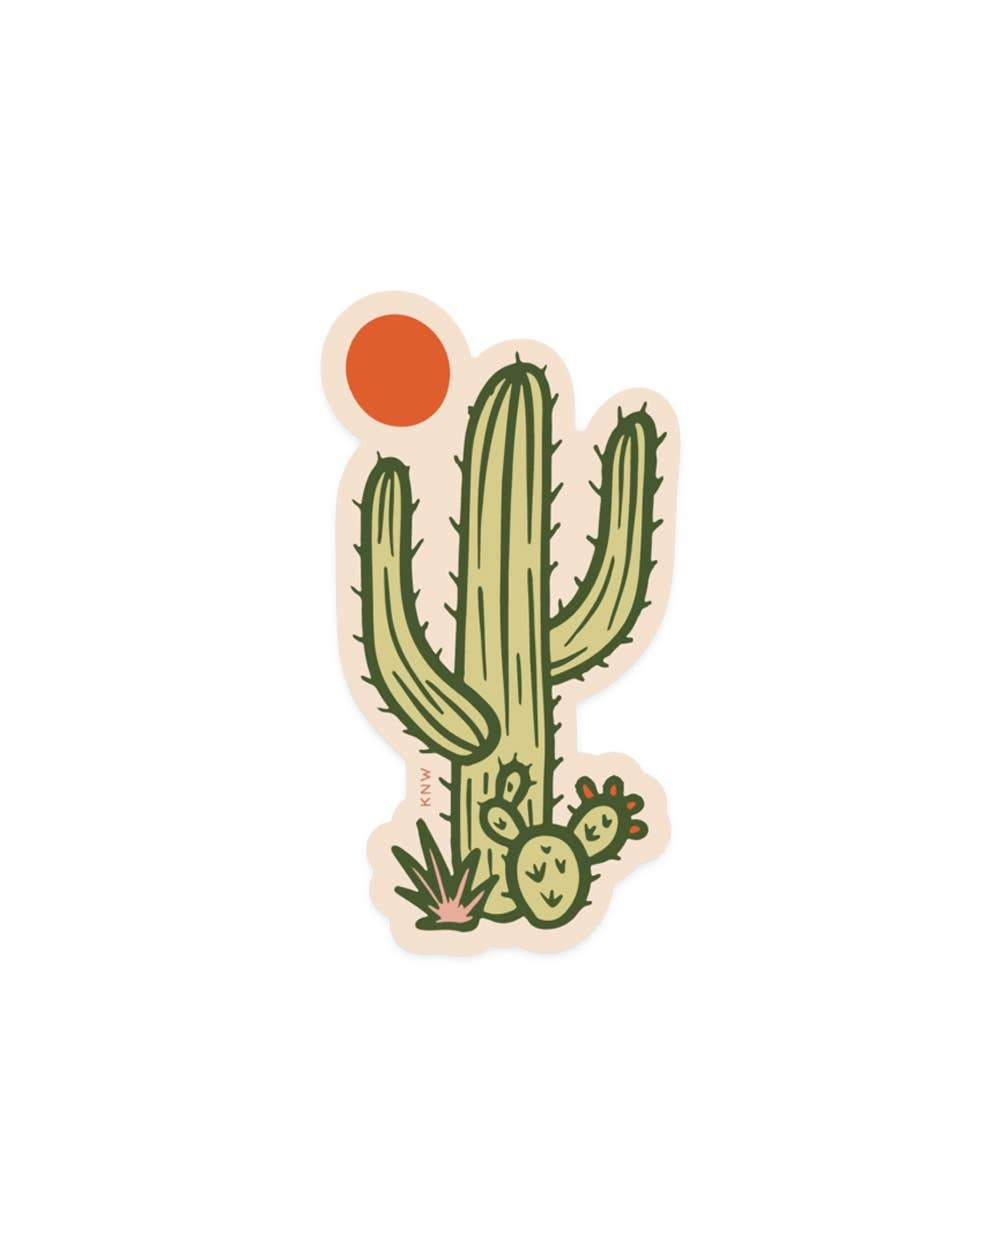 Sunny Saguaro - Sticker - for sale by Succy Crafts